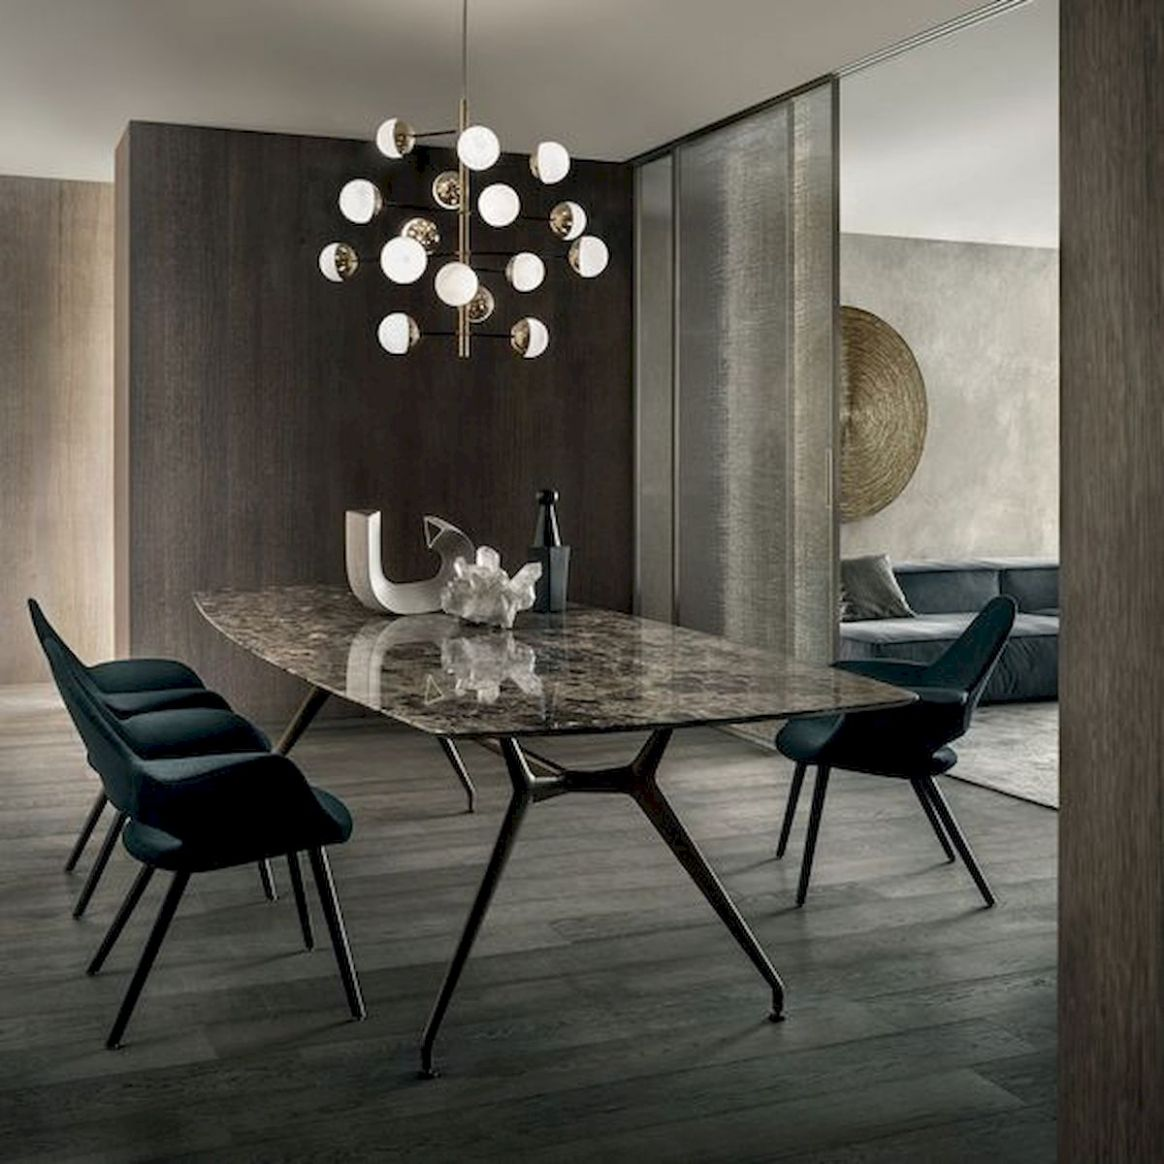 9 Elegant Modern Dining Room Design and Decor Ideas - house955